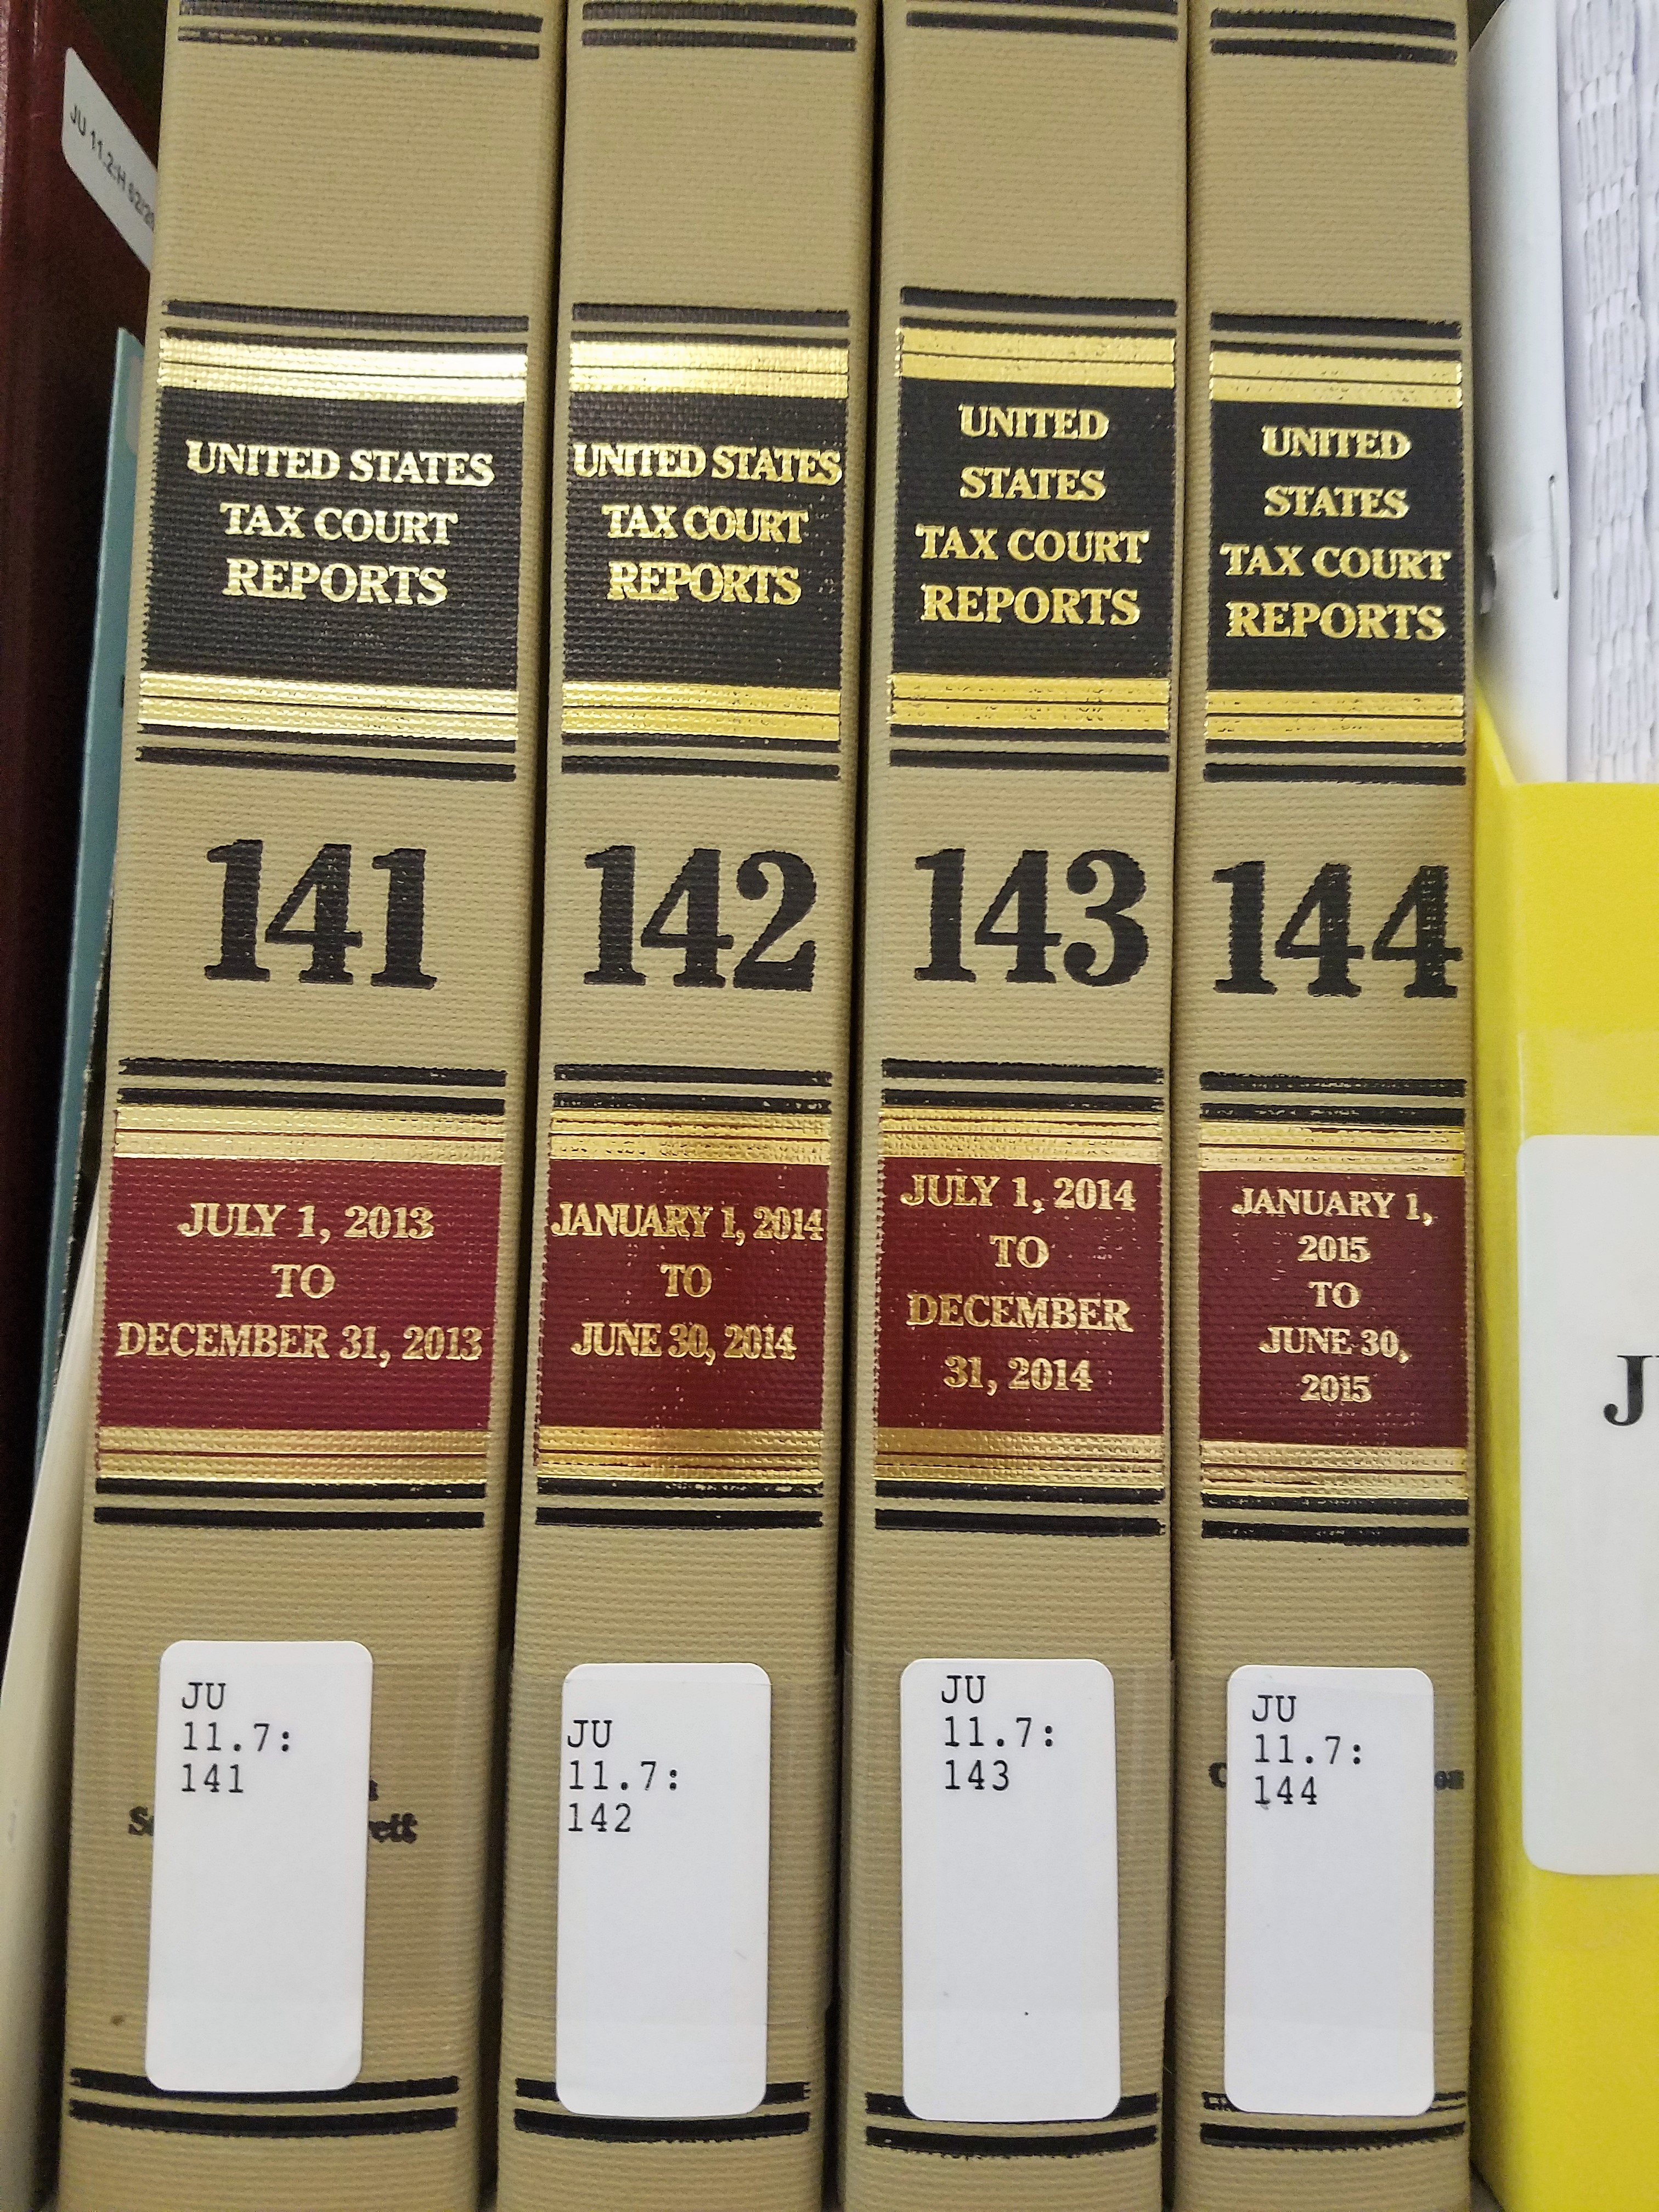 Reports of the U.S. Tax Court